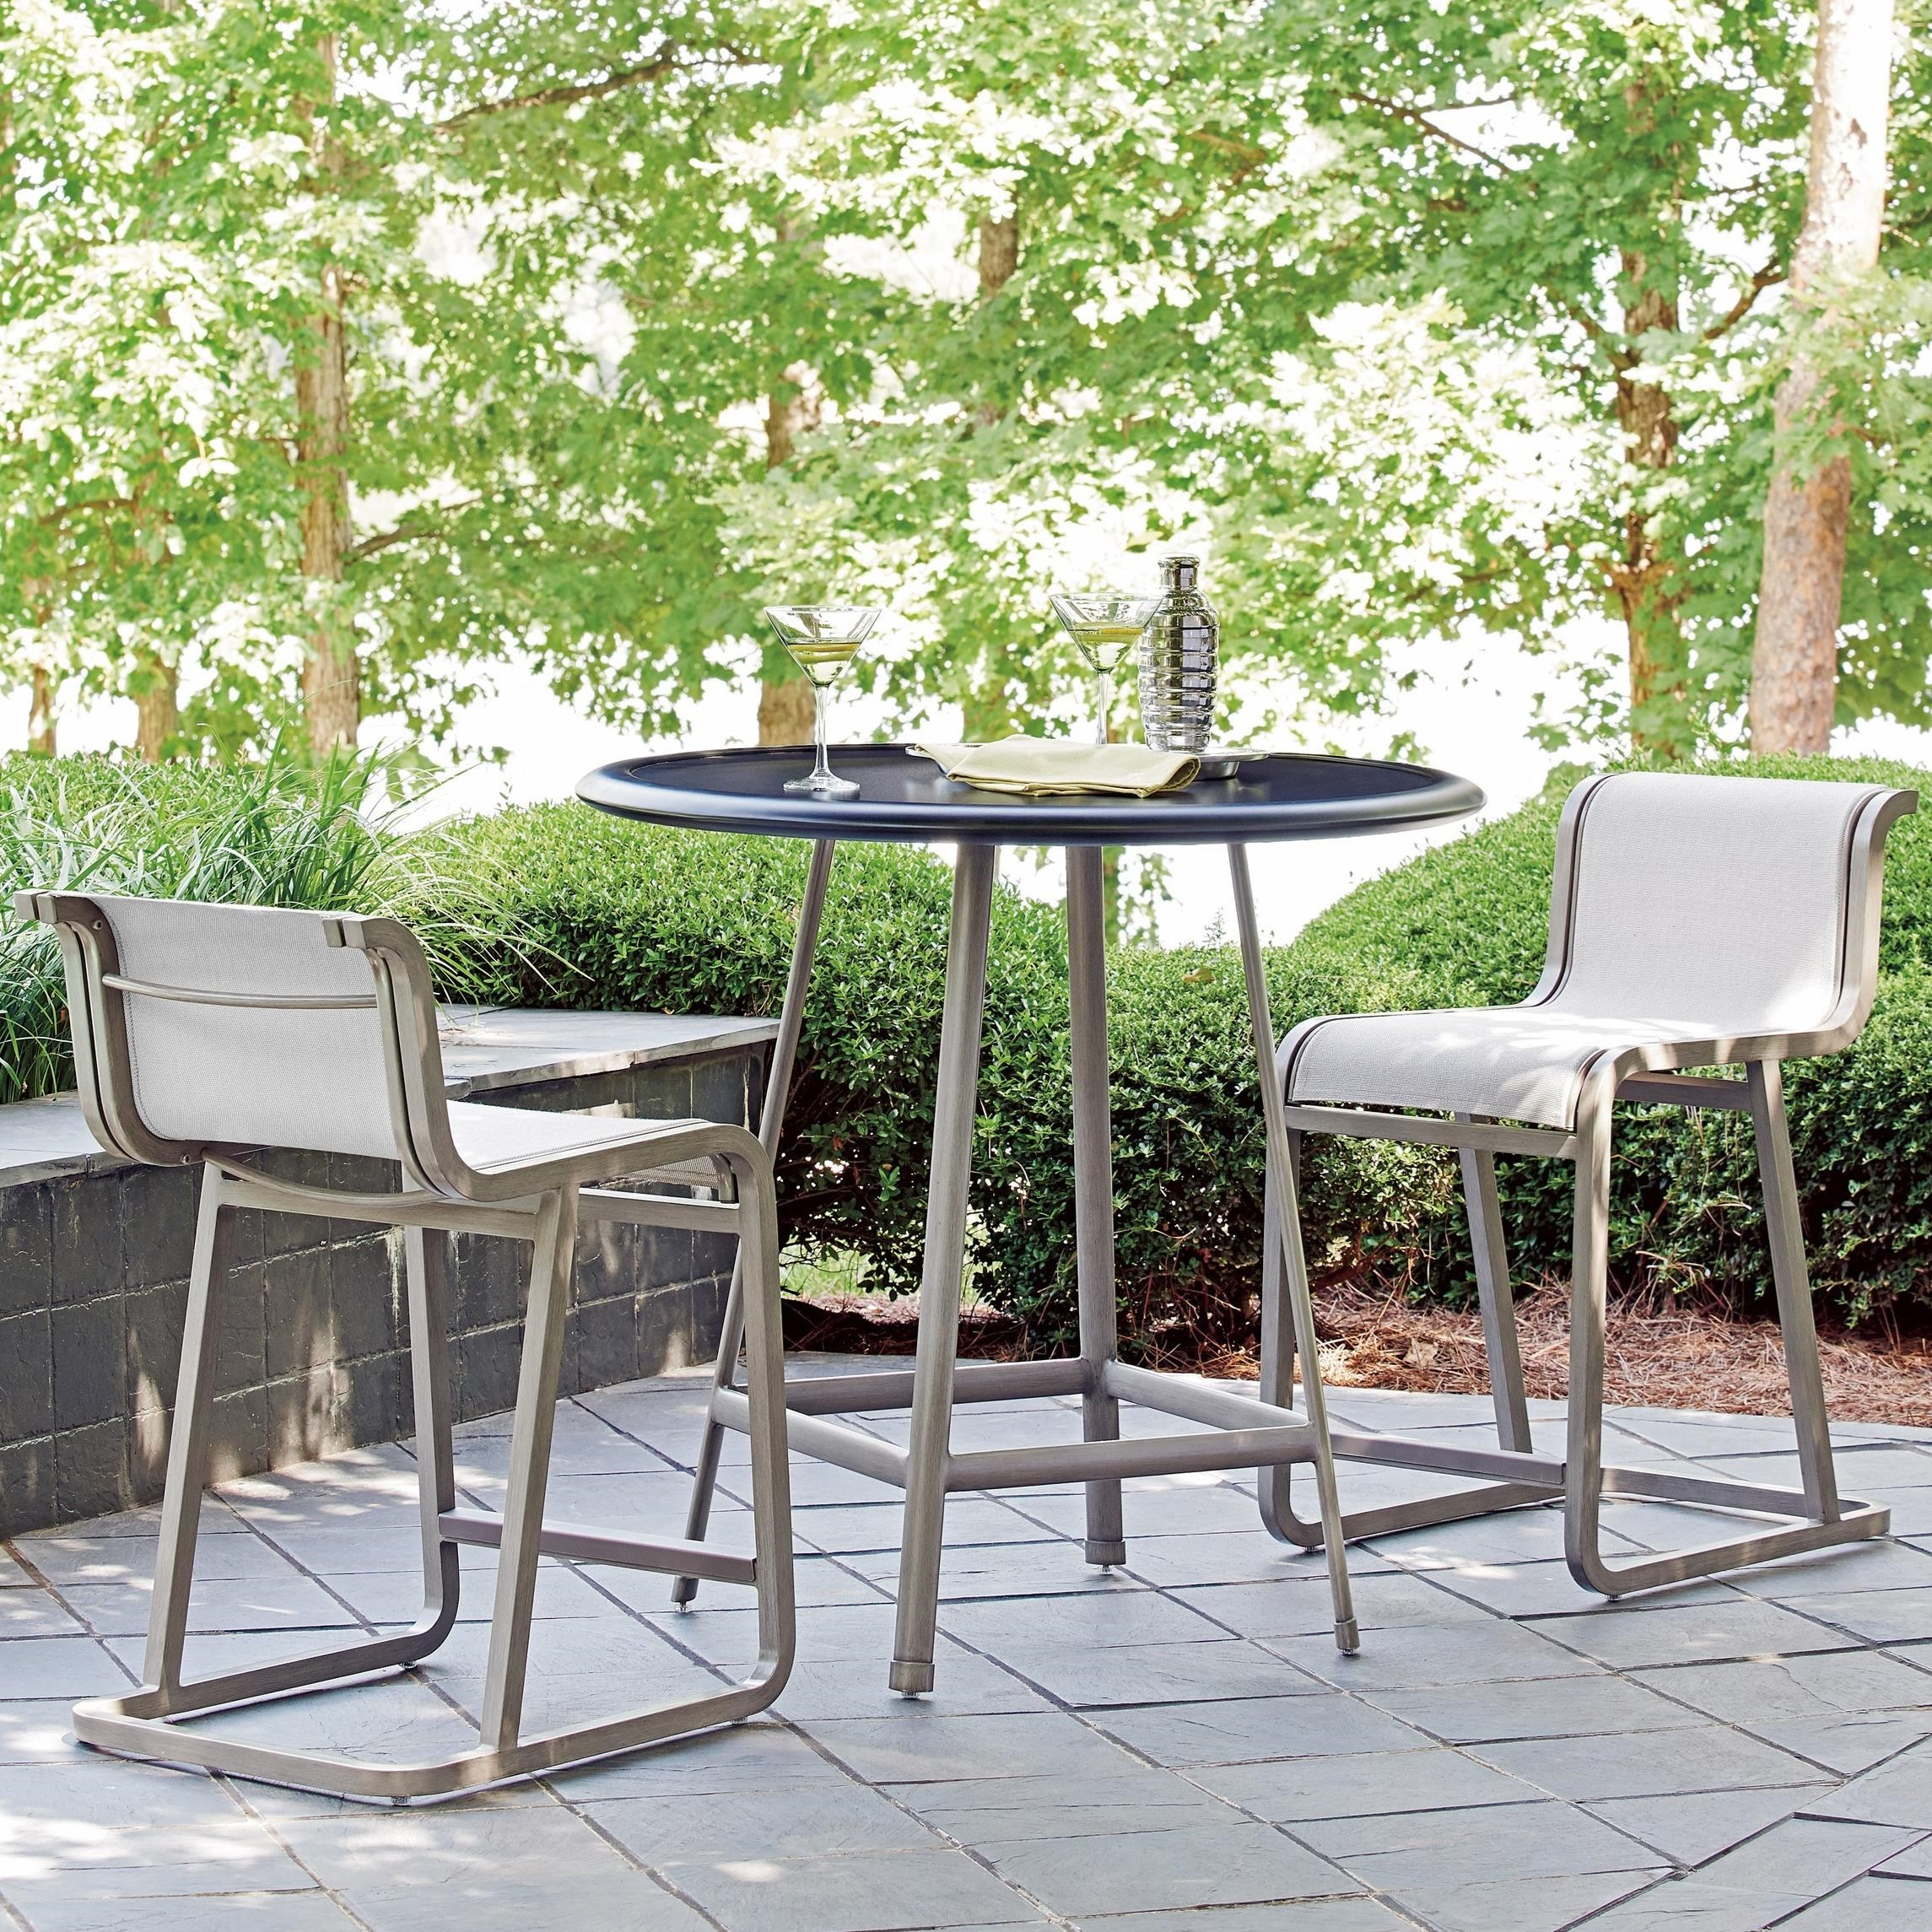 Del Mar Outdoor Bistro Set - Counter Height by Tommy Bahama Outdoor Living at Baer's Furniture